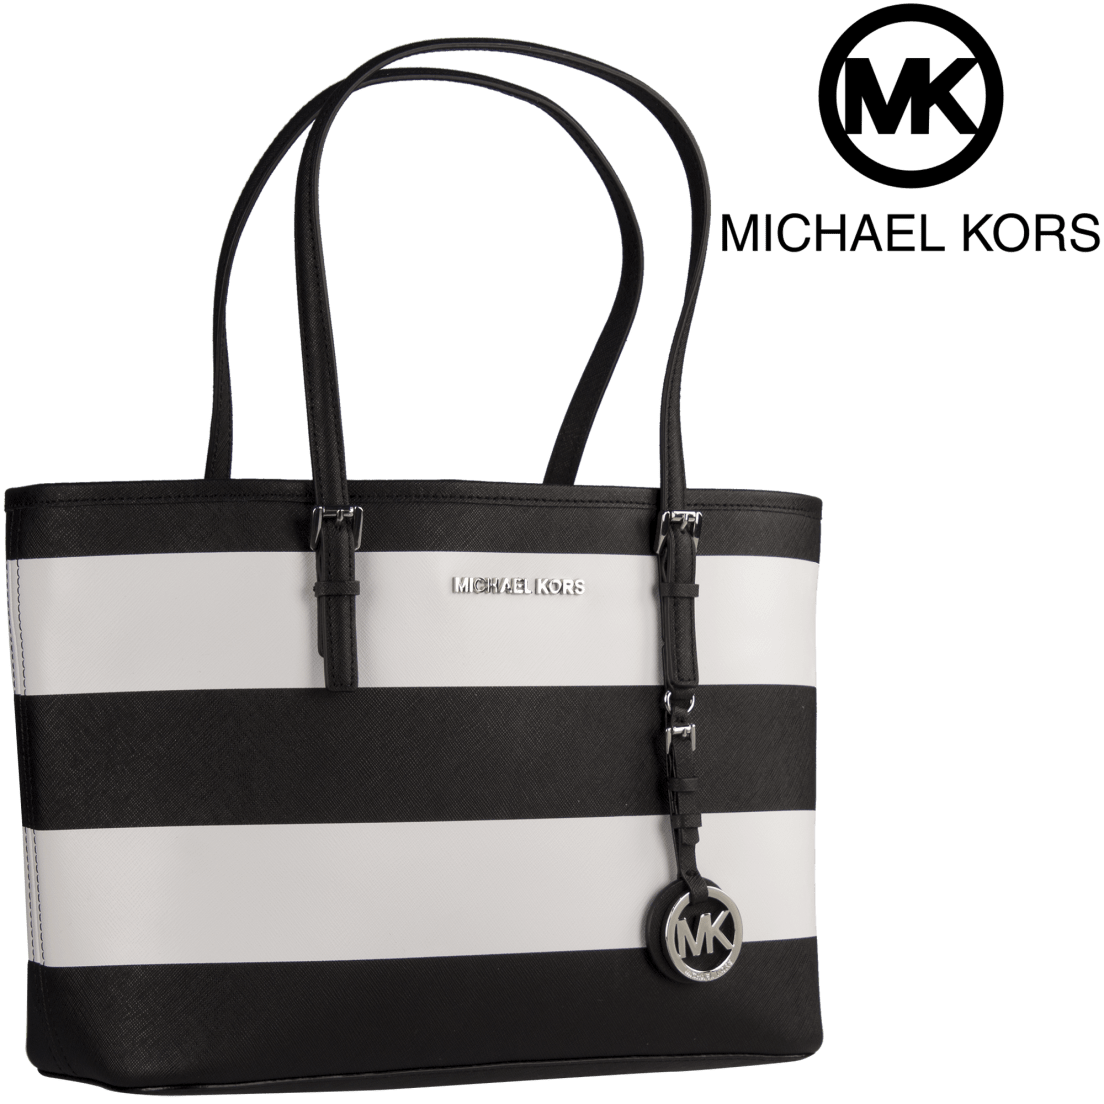 49579e0a7134 Michael Kors Jet Set Travel Small Saffiano Leather Top-Zip Tote in Black    White